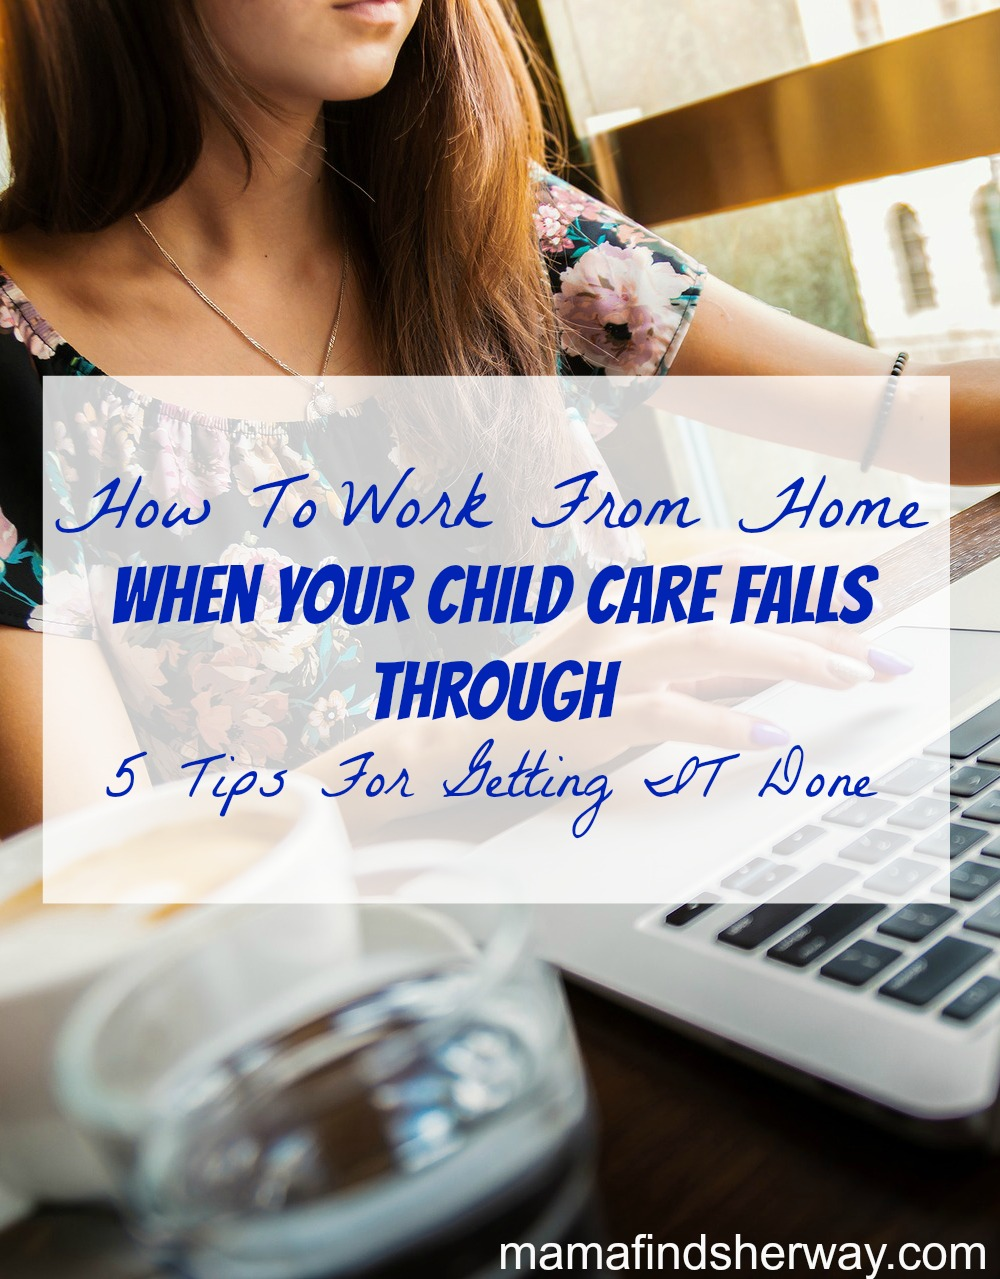 Working From Home Without Child Care | 5 Tips For Getting It Done